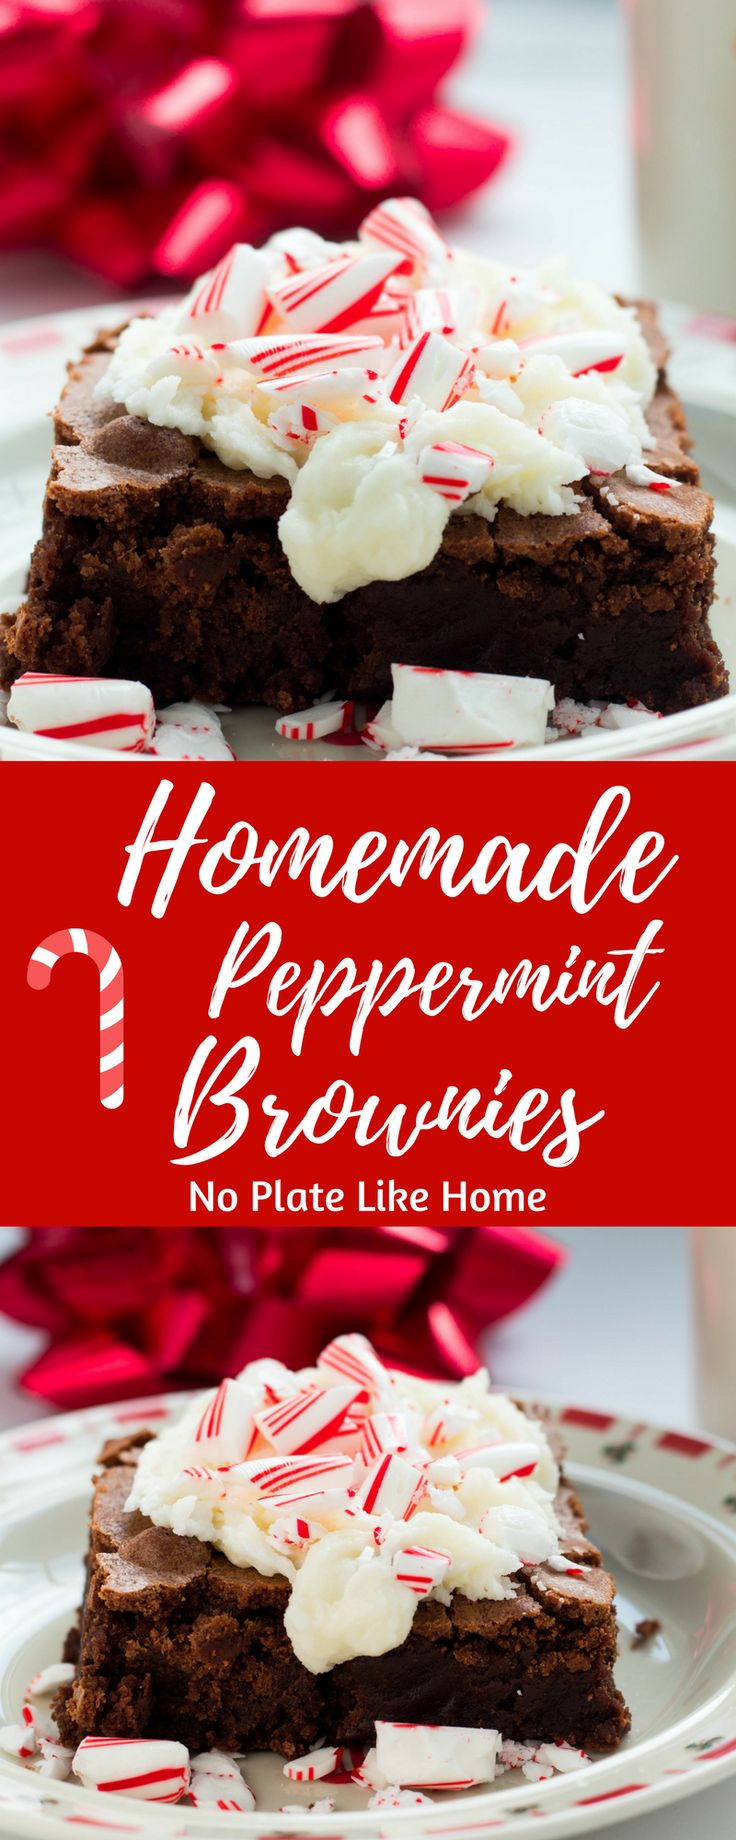 Festive Homemade Peppermint Brownies are easy-to-make using cocoa powder. The Peppermint Buttercream frosting with candy cane topping is a delicious combination of flavors for peppermint lovers who love chocolate brownies. These brownies are irresistible! Get your peppermint on this holiday season! Pin for later! #yummy #delicious #dessert #brownies #foodie